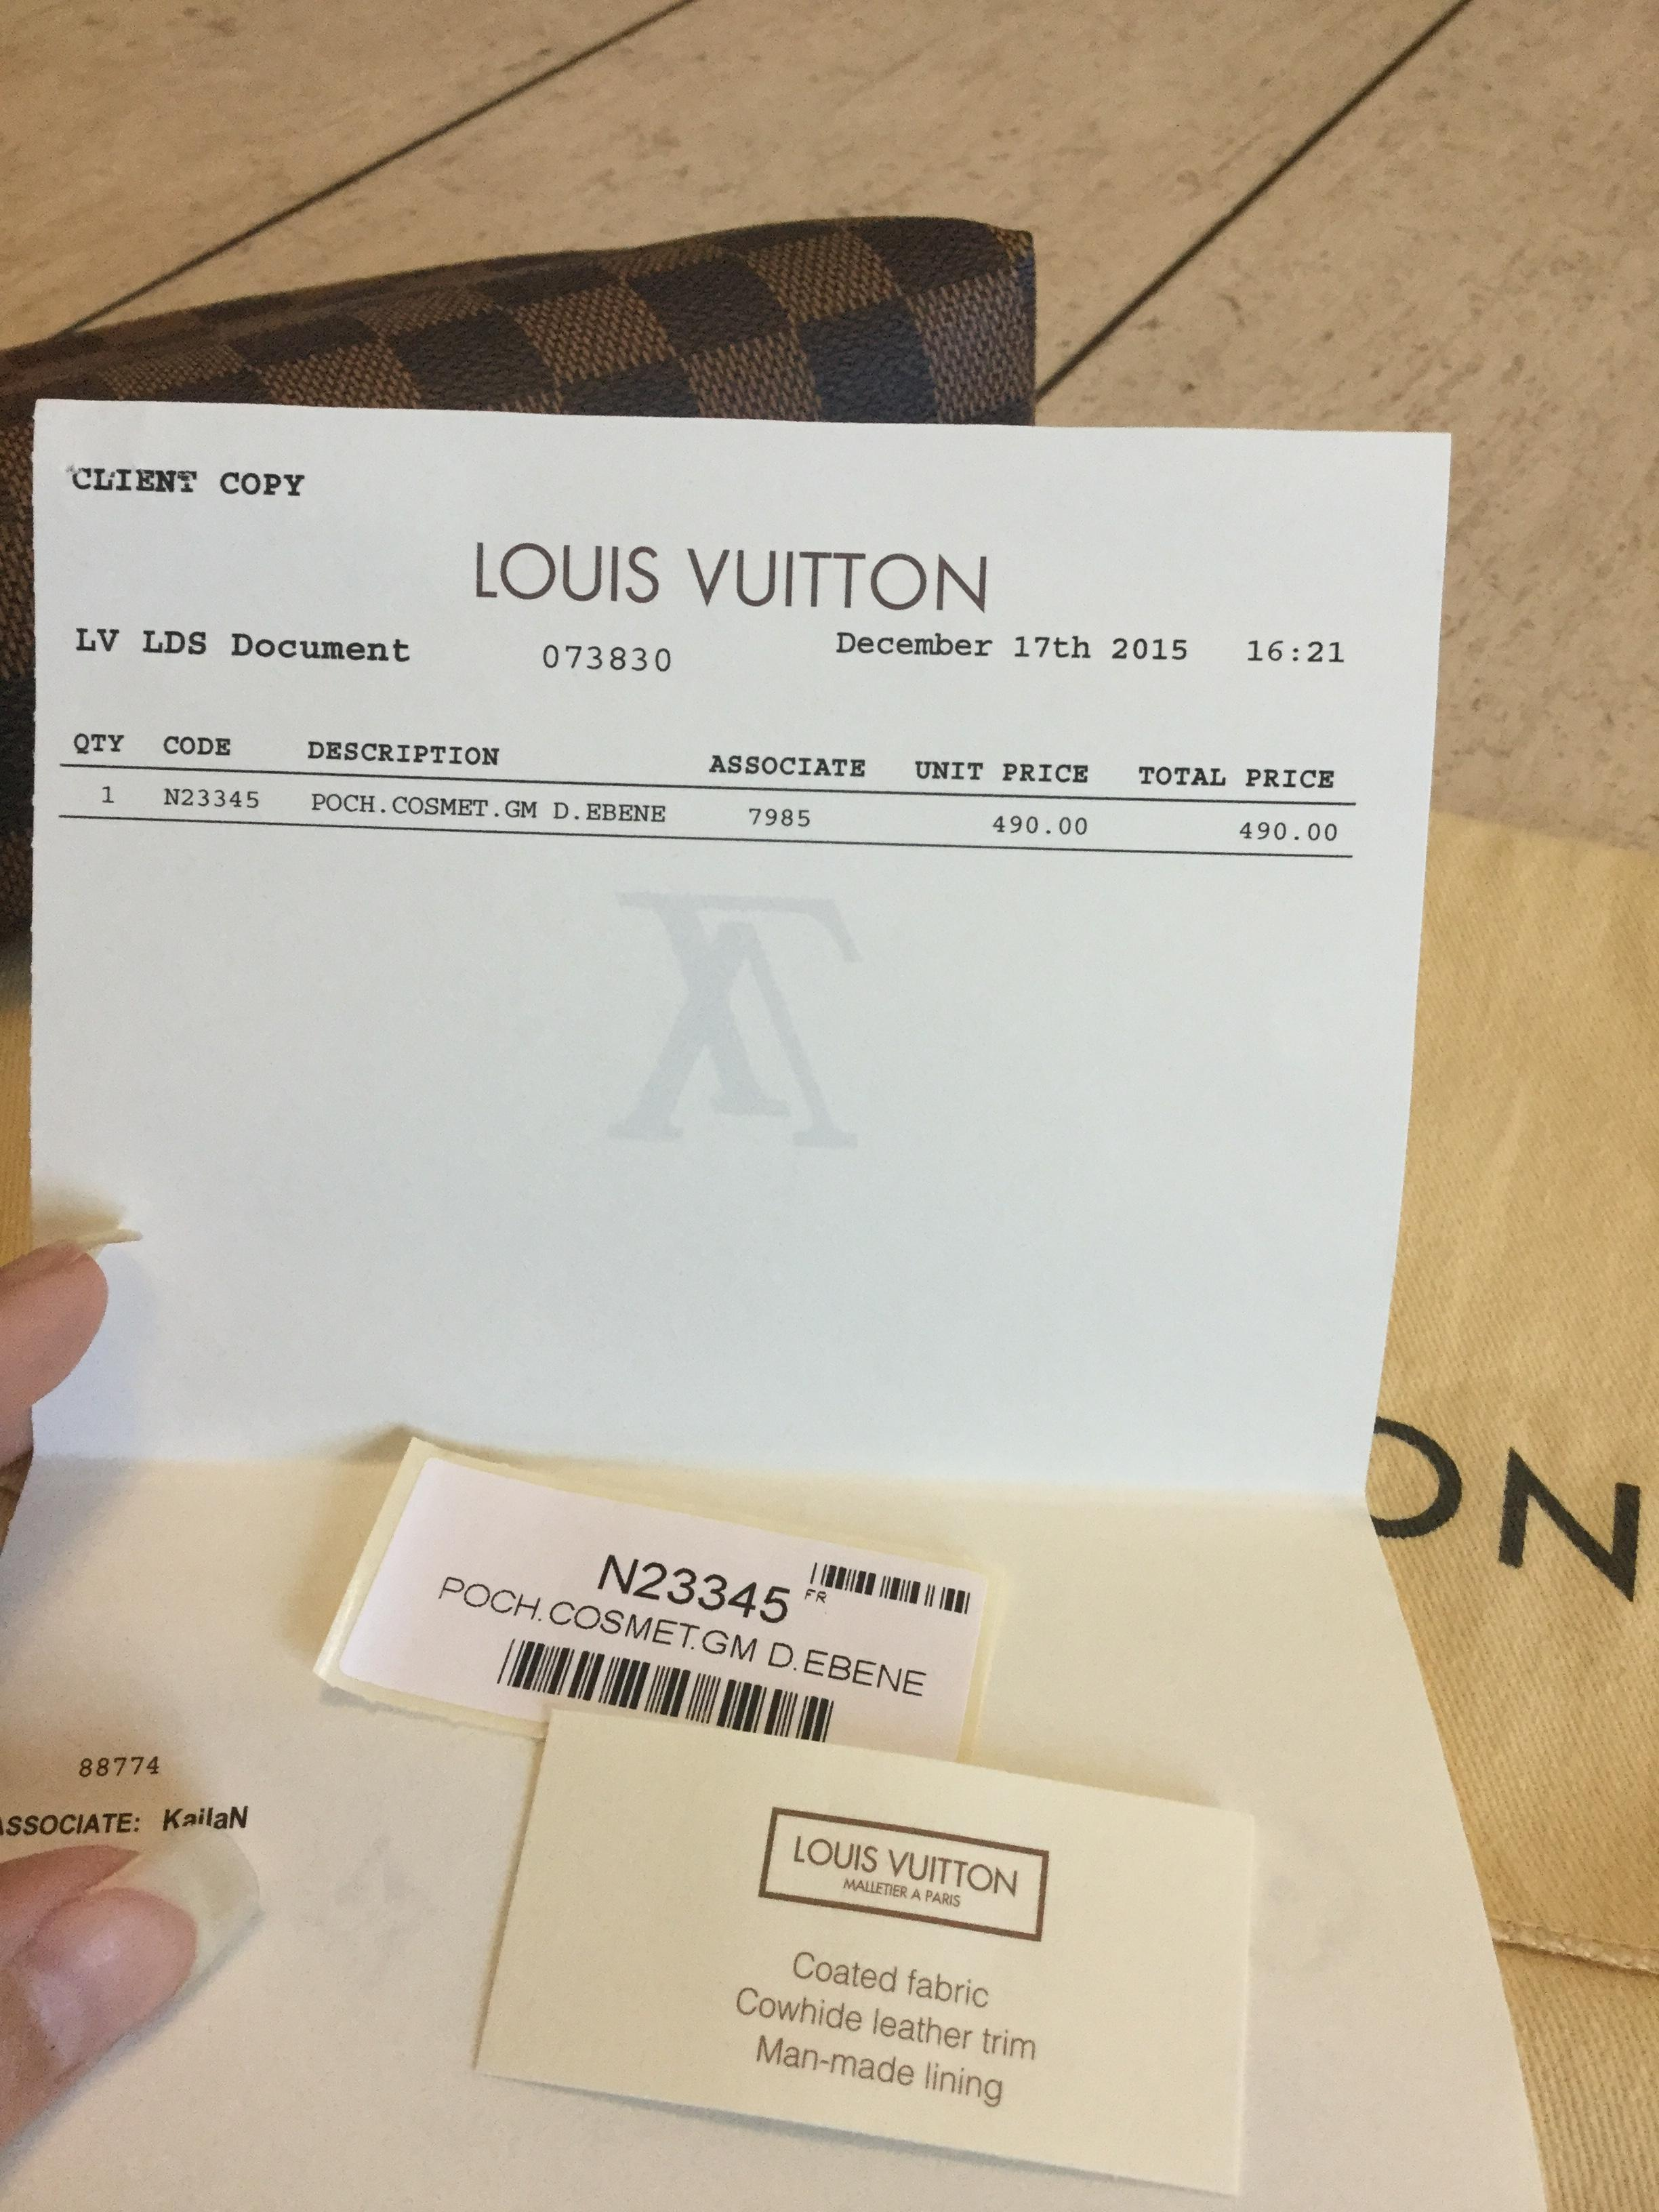 Louis vuitton date code list in Melbourne